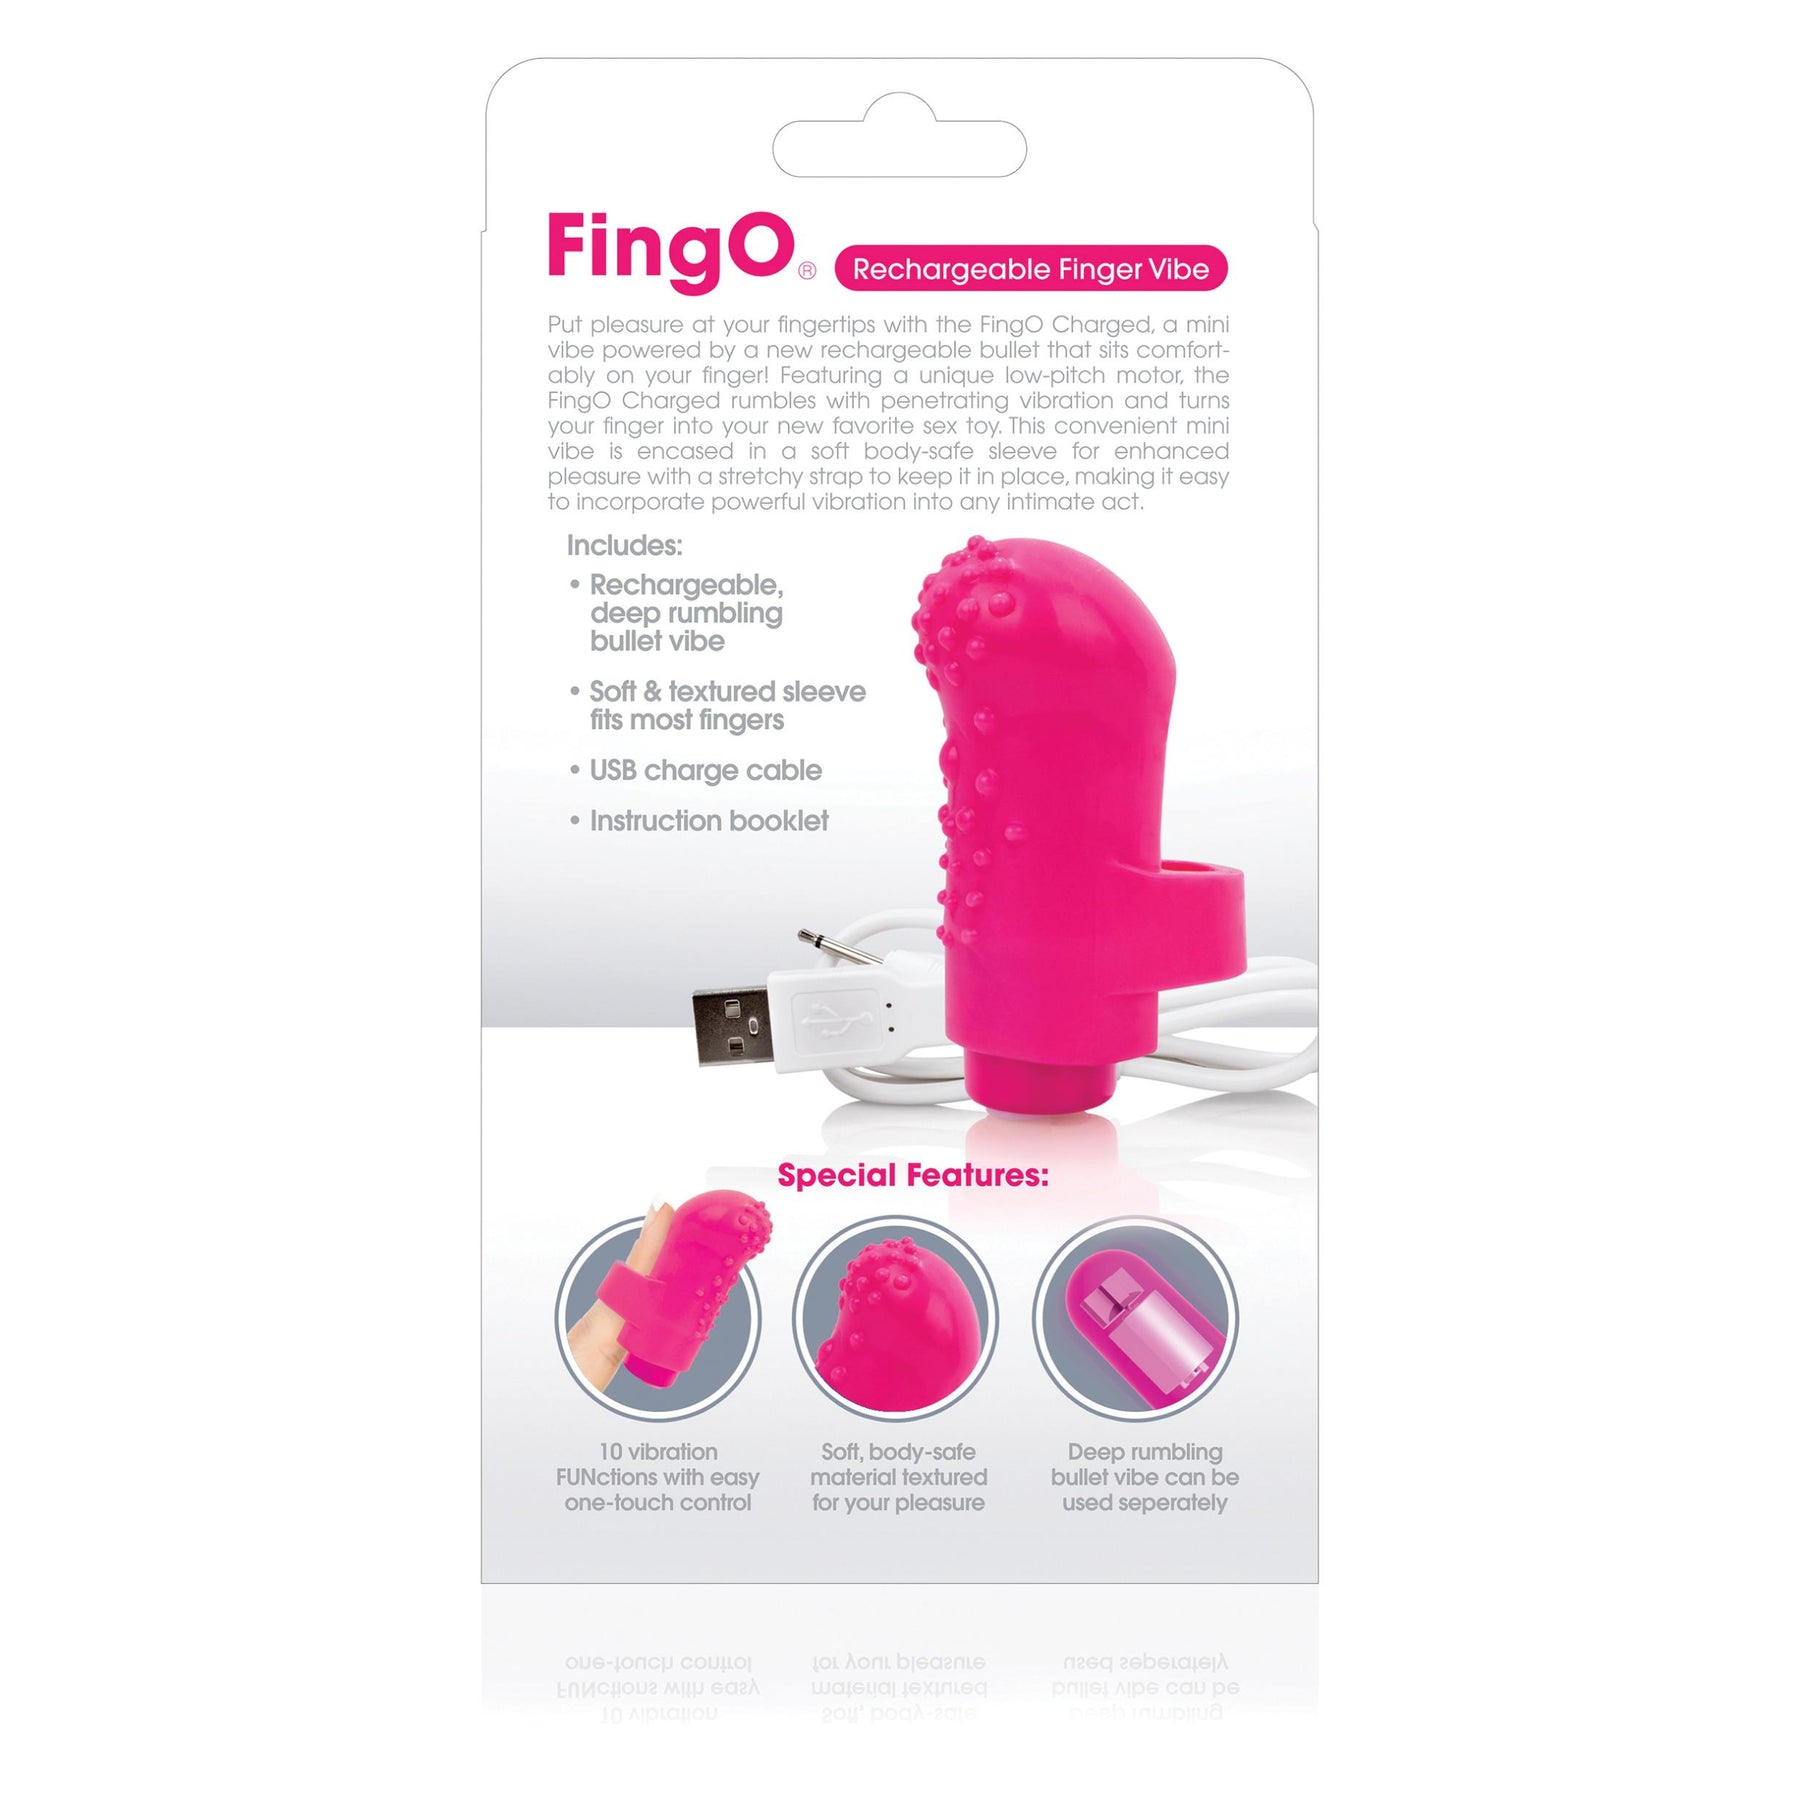 Charged Fingo Rechargeable Finger Vibe - Pink